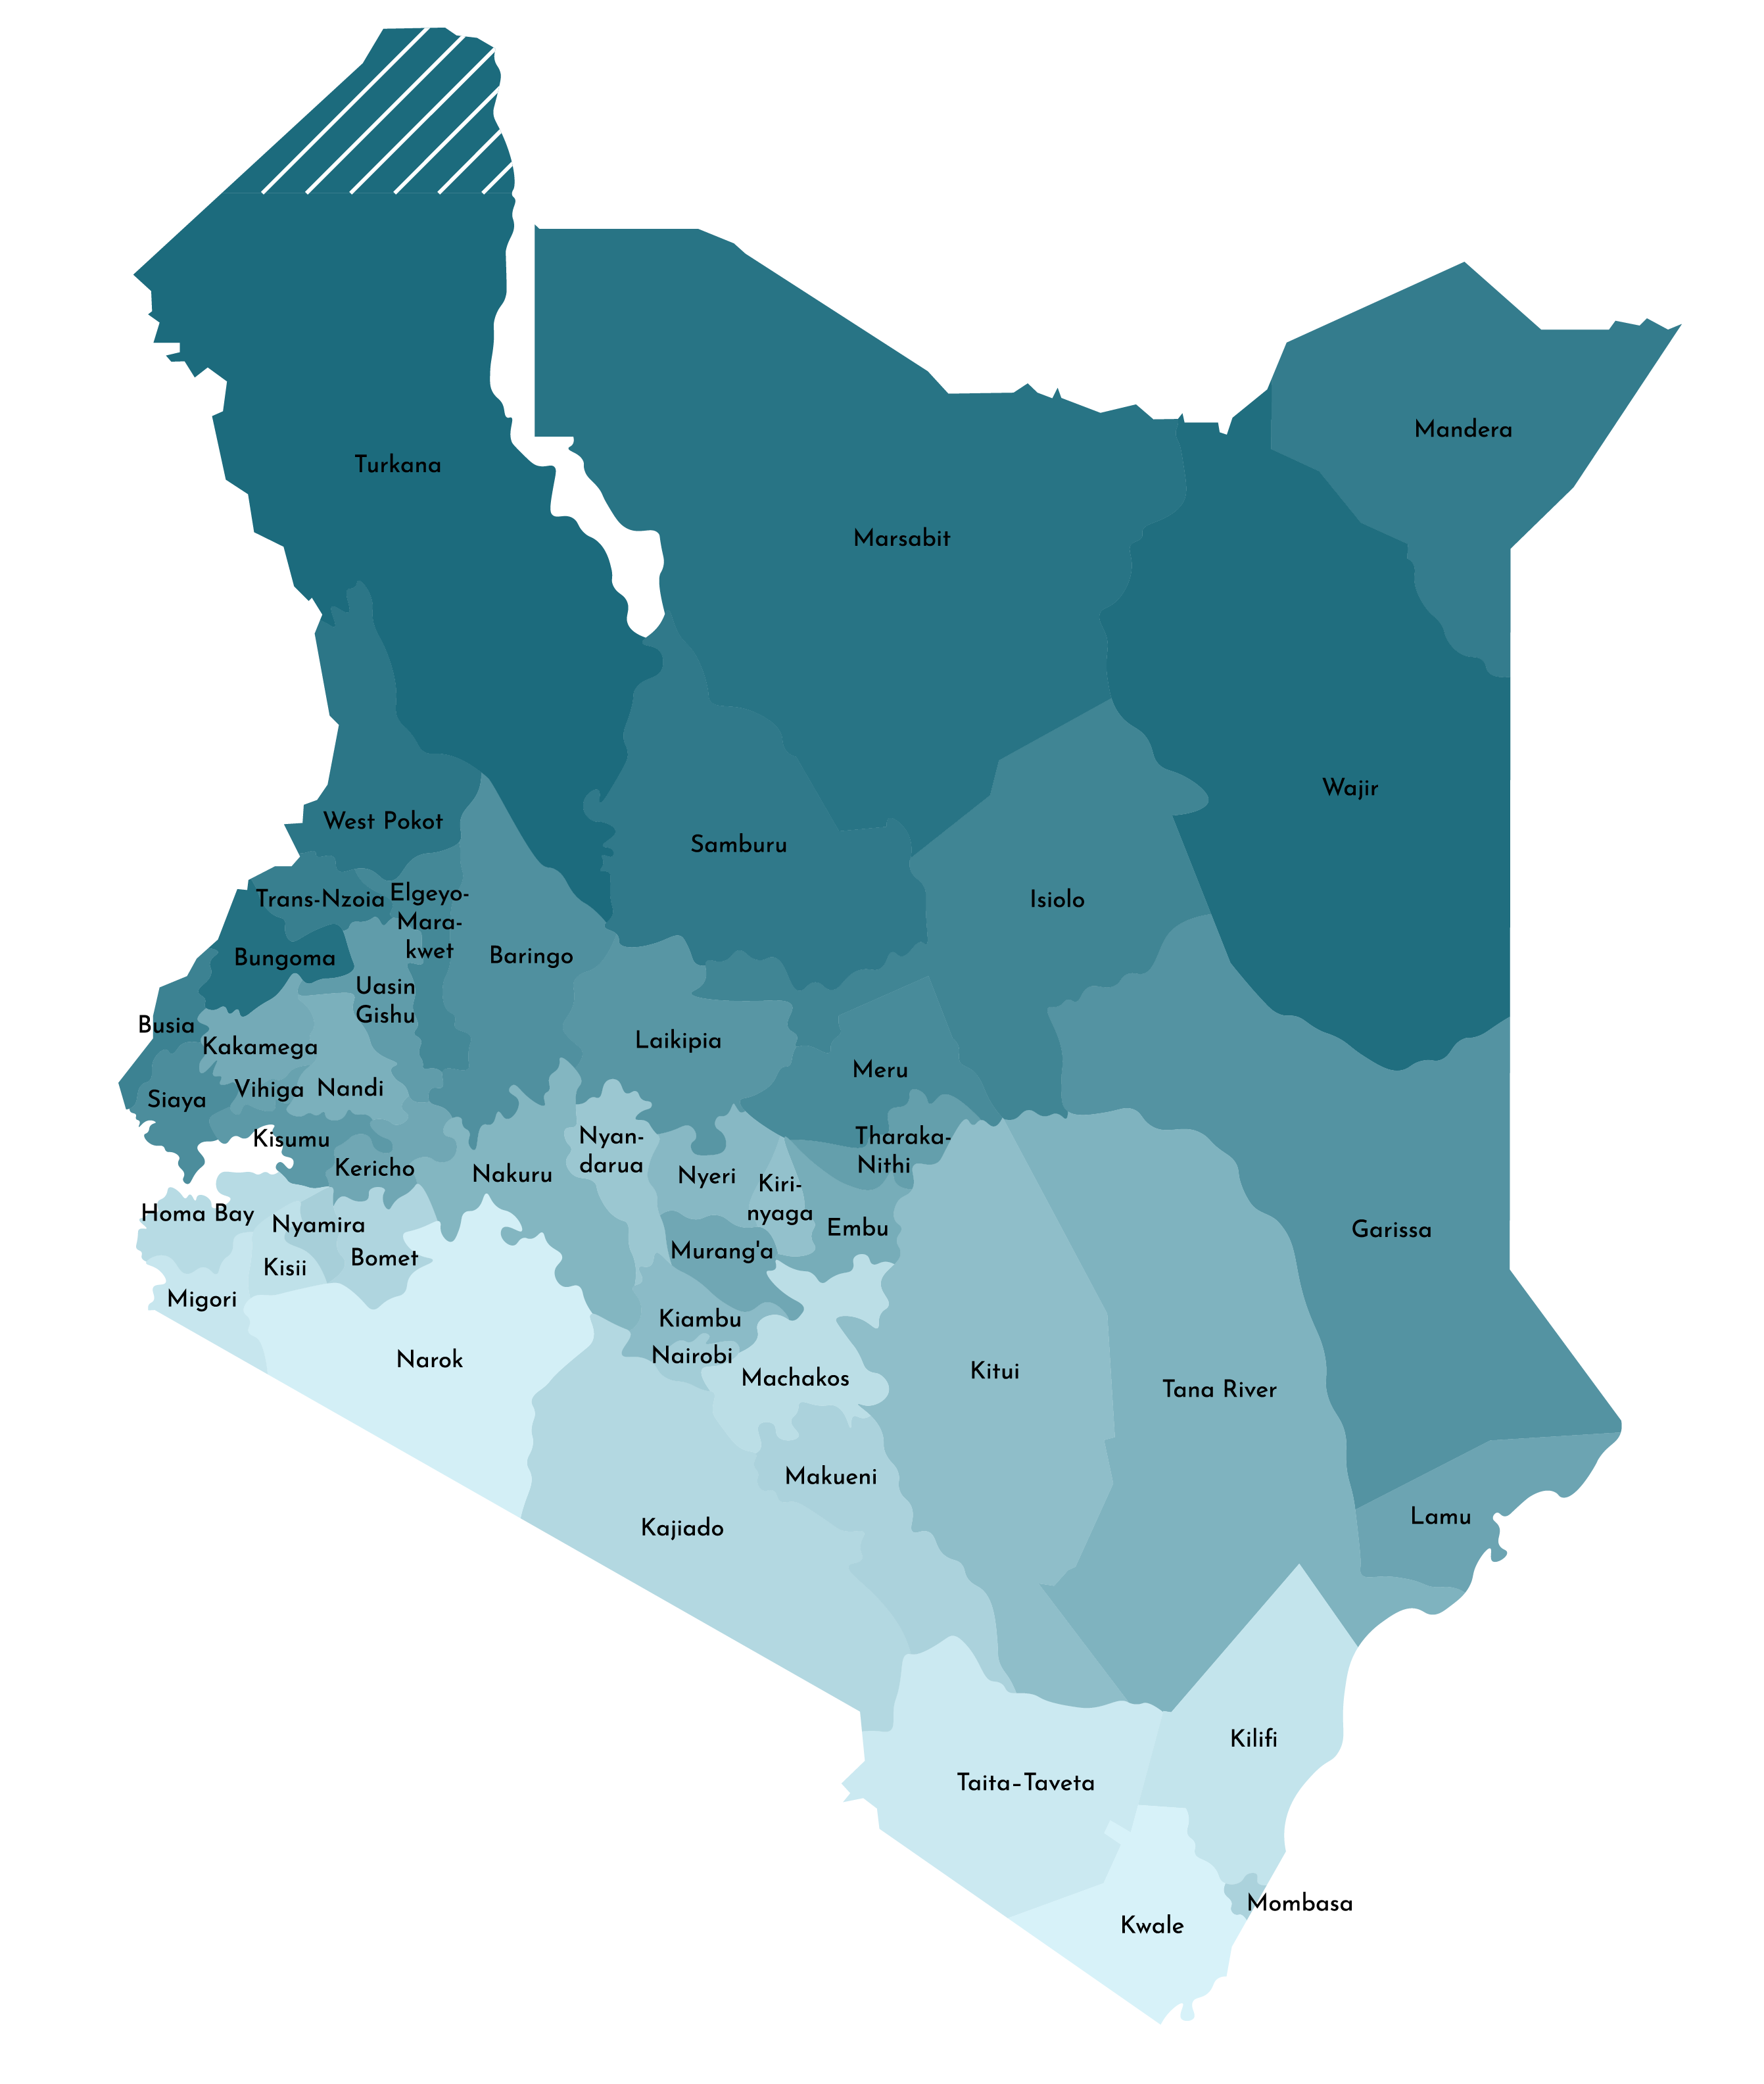 Political Map of Kenya displaying 47 counties including the national capital of Nairobi.